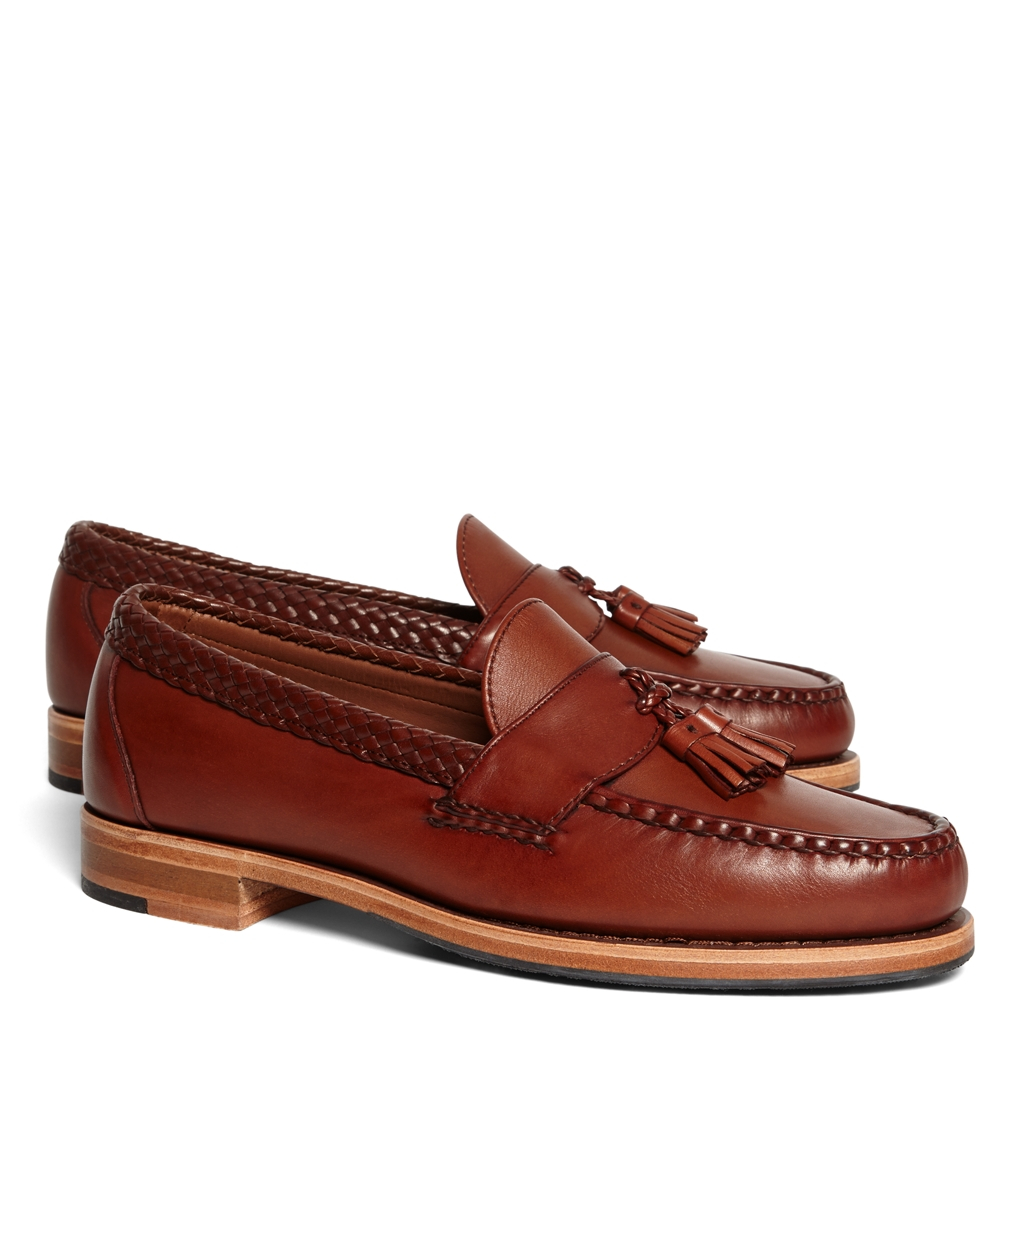 Lyst Brooks Brothers Braid Strap Tassel Penny Loafers In